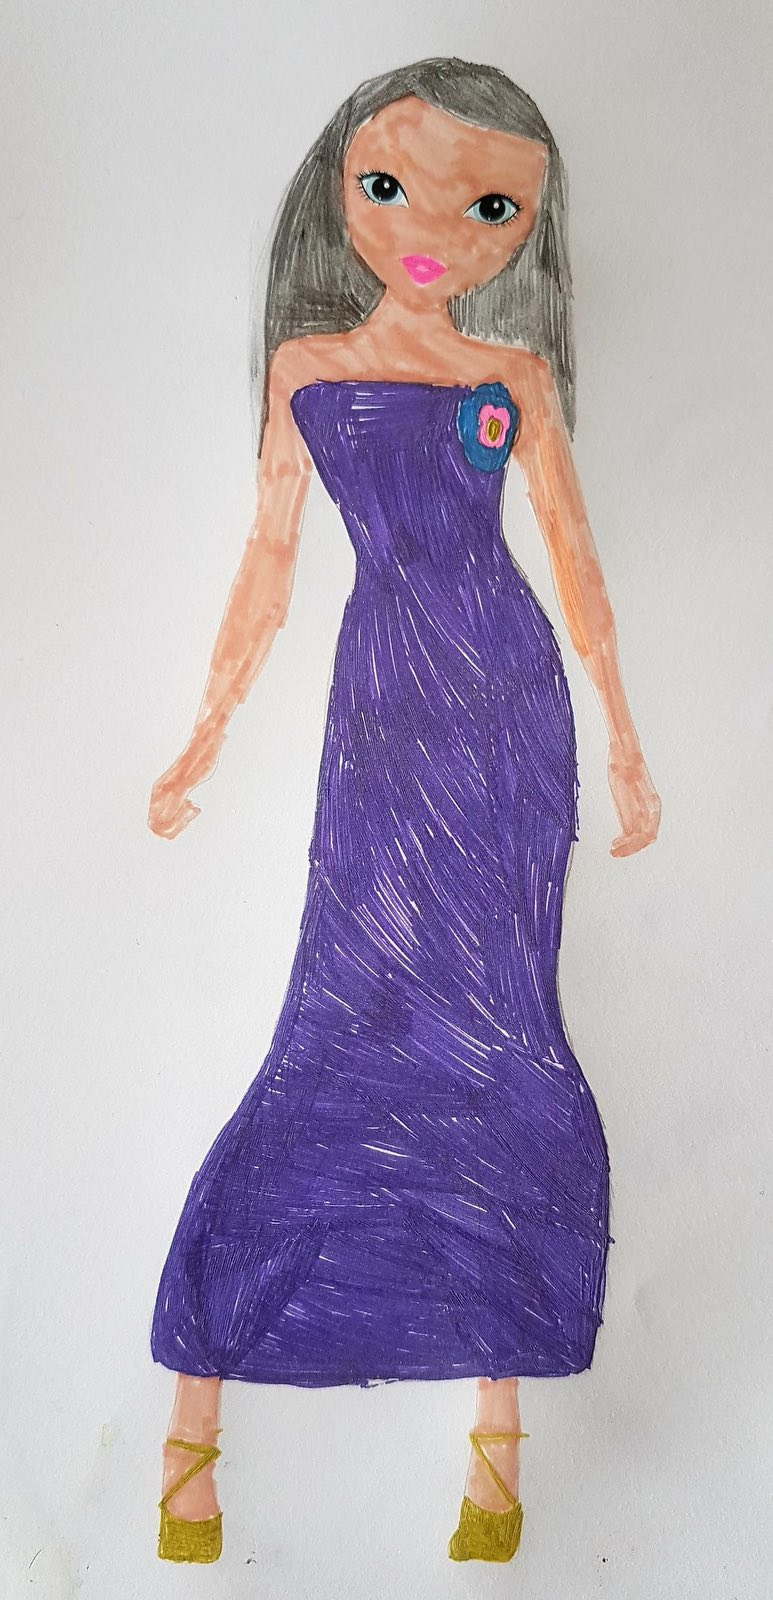 Saira  M., 9years, from Australia